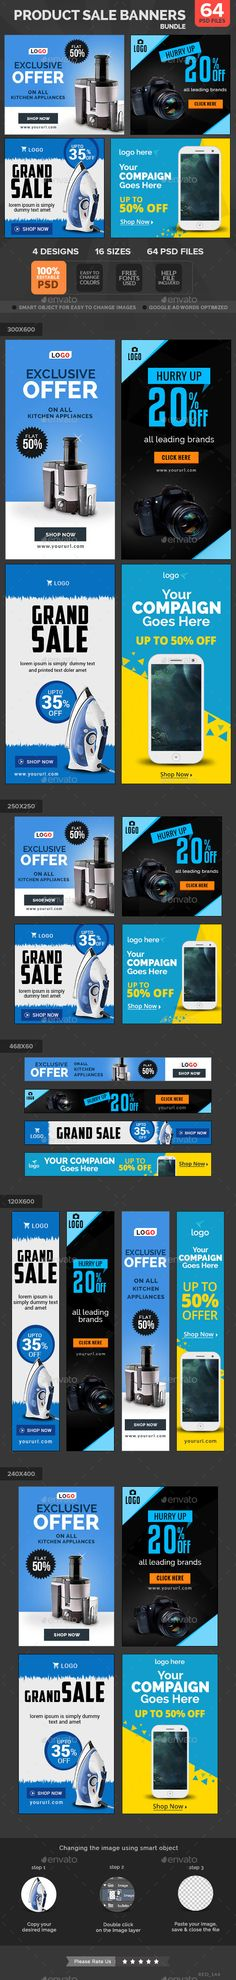 Product Sale Banners Design template Bundle - 4 Sets - Banners & Ads Web Template PSD. Download here: https://graphicriver.net/item/product-sale-banners-bundle-4-sets/11280695?s_rank=1799&ref=yinkira